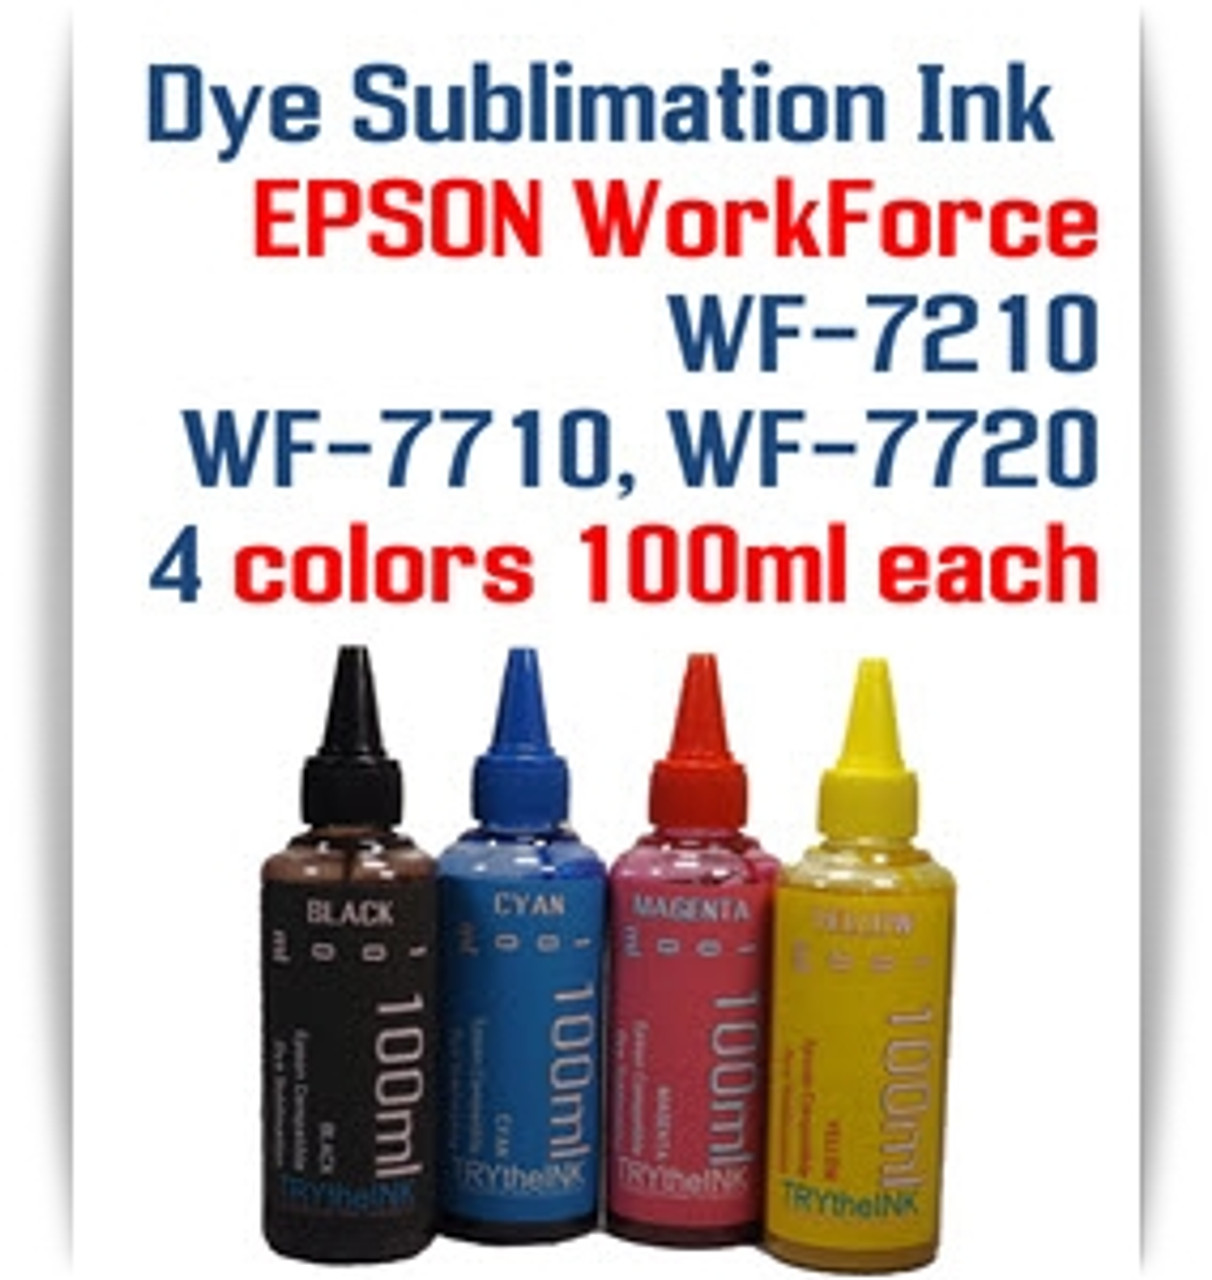 4- 100ml bottles Dye Sublimation Ink Package   Included Colors: Black, Cyan, Magenta, Yellow  Epson WorkForce WF-7210, WorkForce WF-7710, WorkForce WF-7720 printers